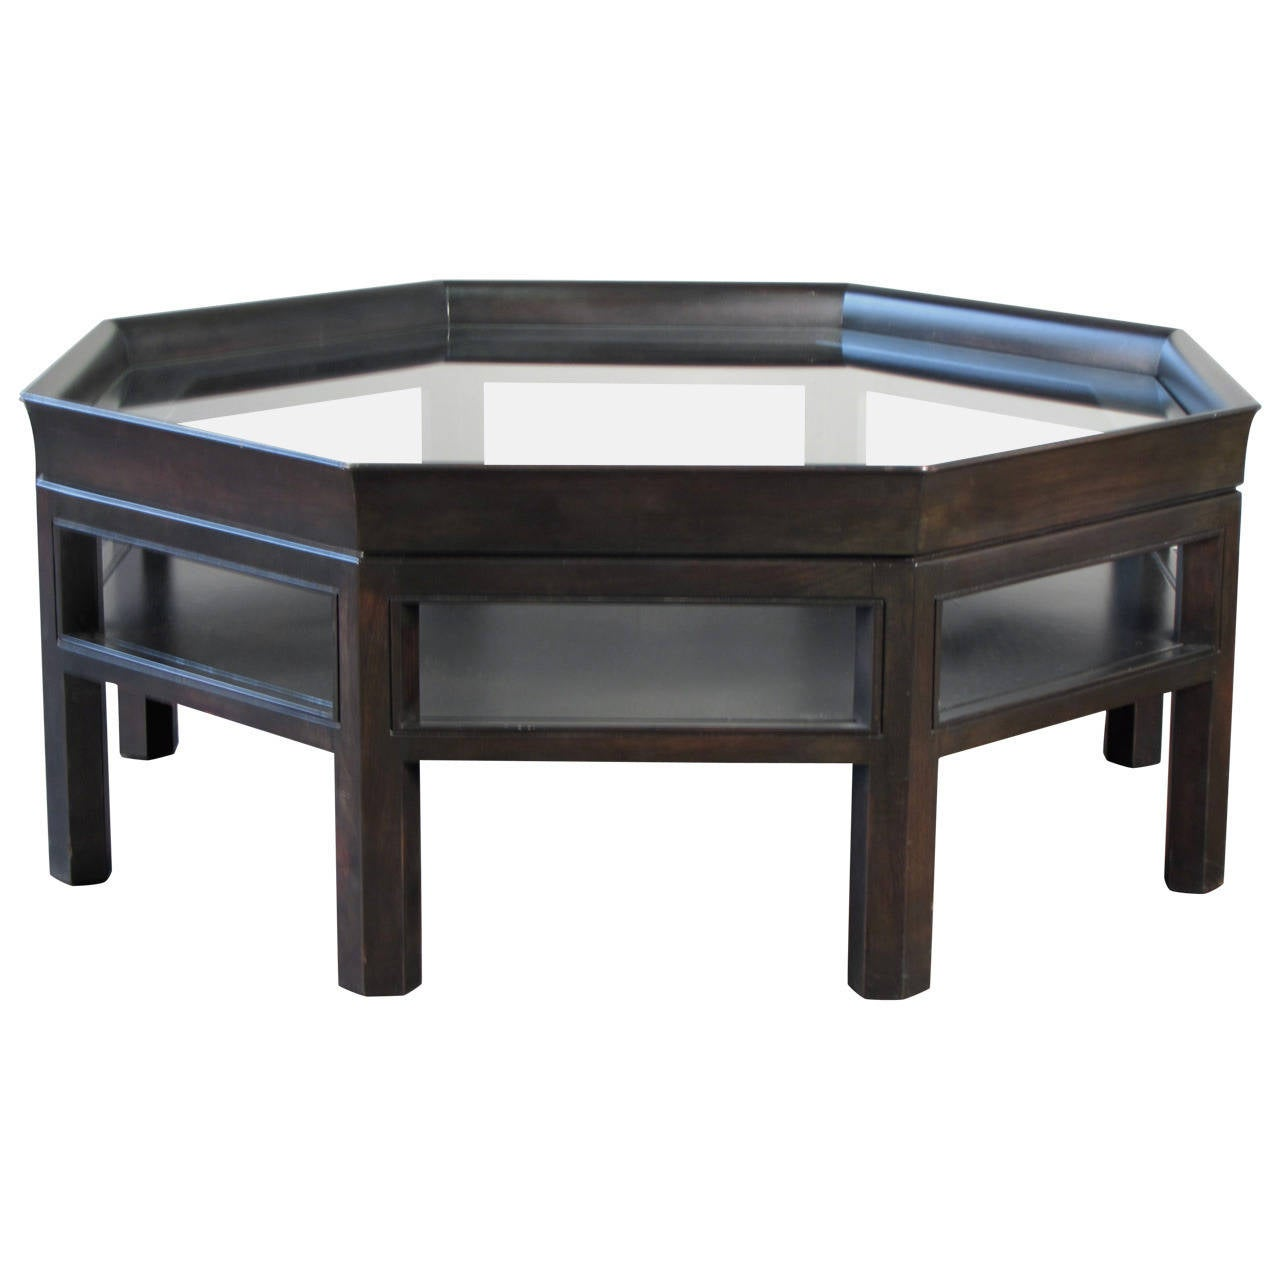 Octagonal Coffee Table By Baker Furniture At 1stdibs